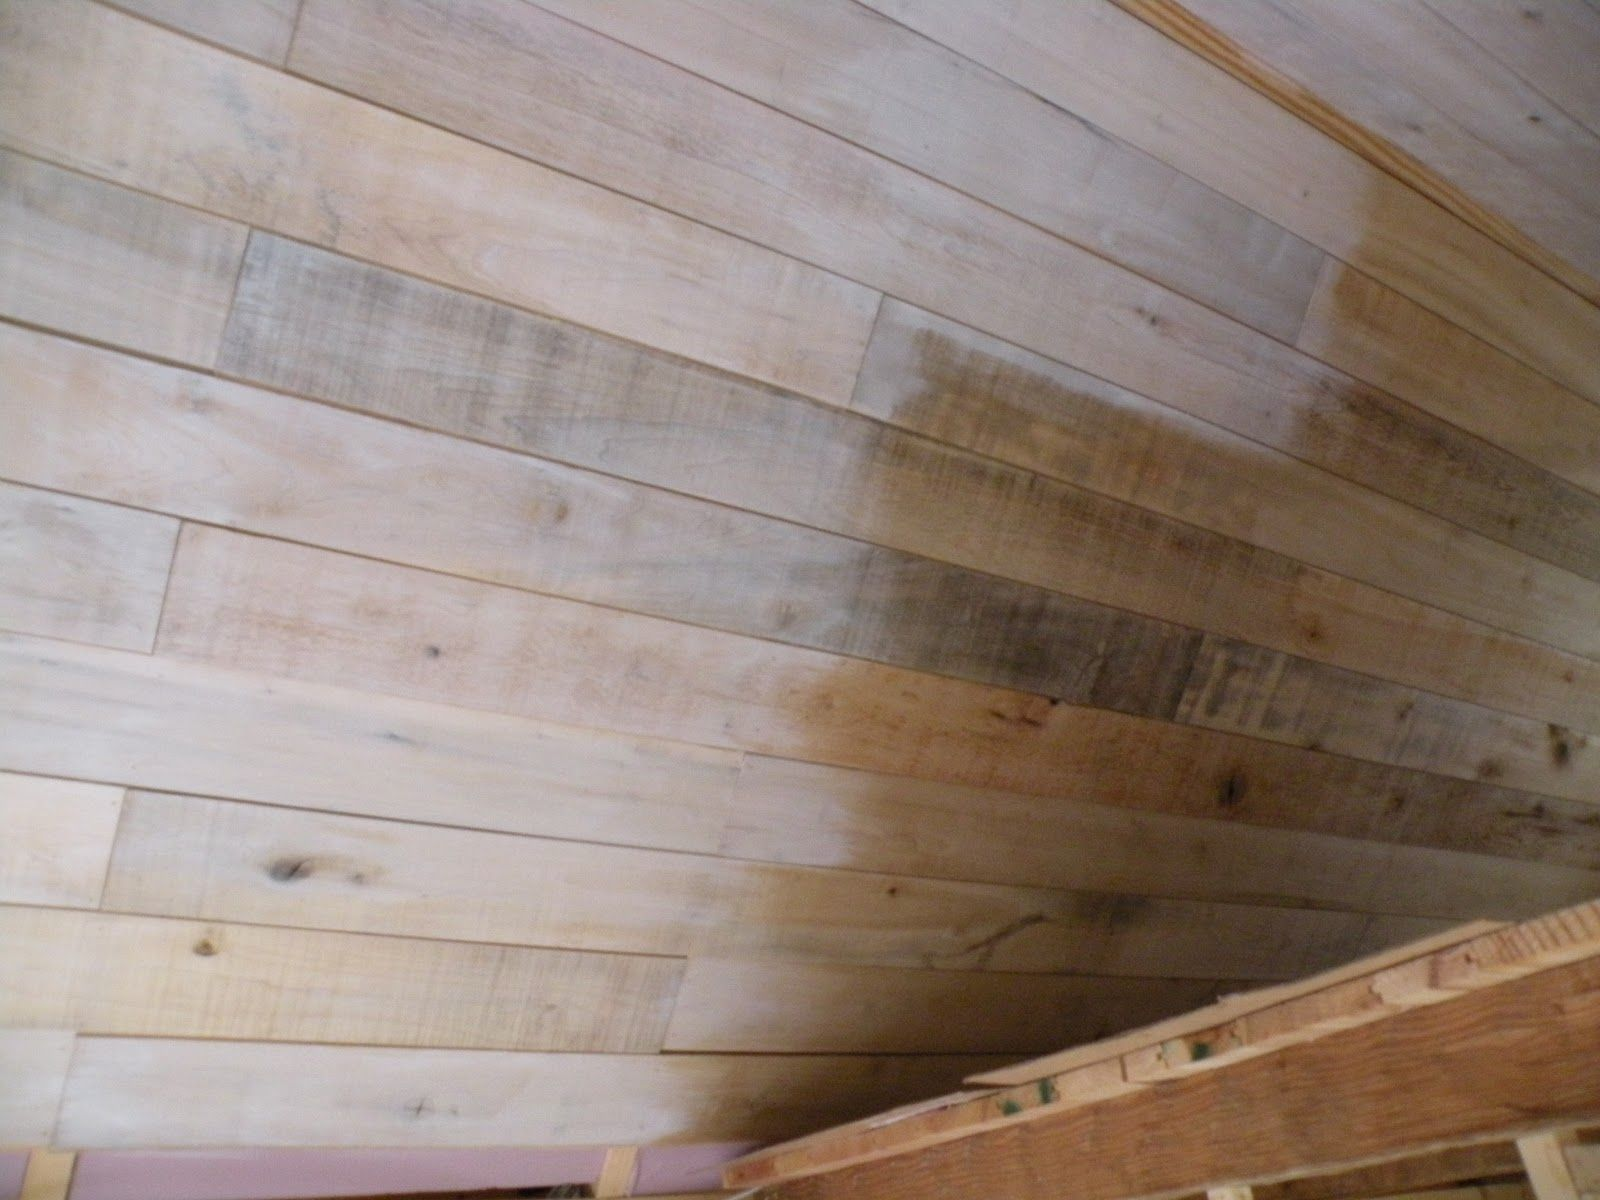 Plywood Plank Ceiling Heres A Picture Of The Difference Between The Unfinished Ceiling